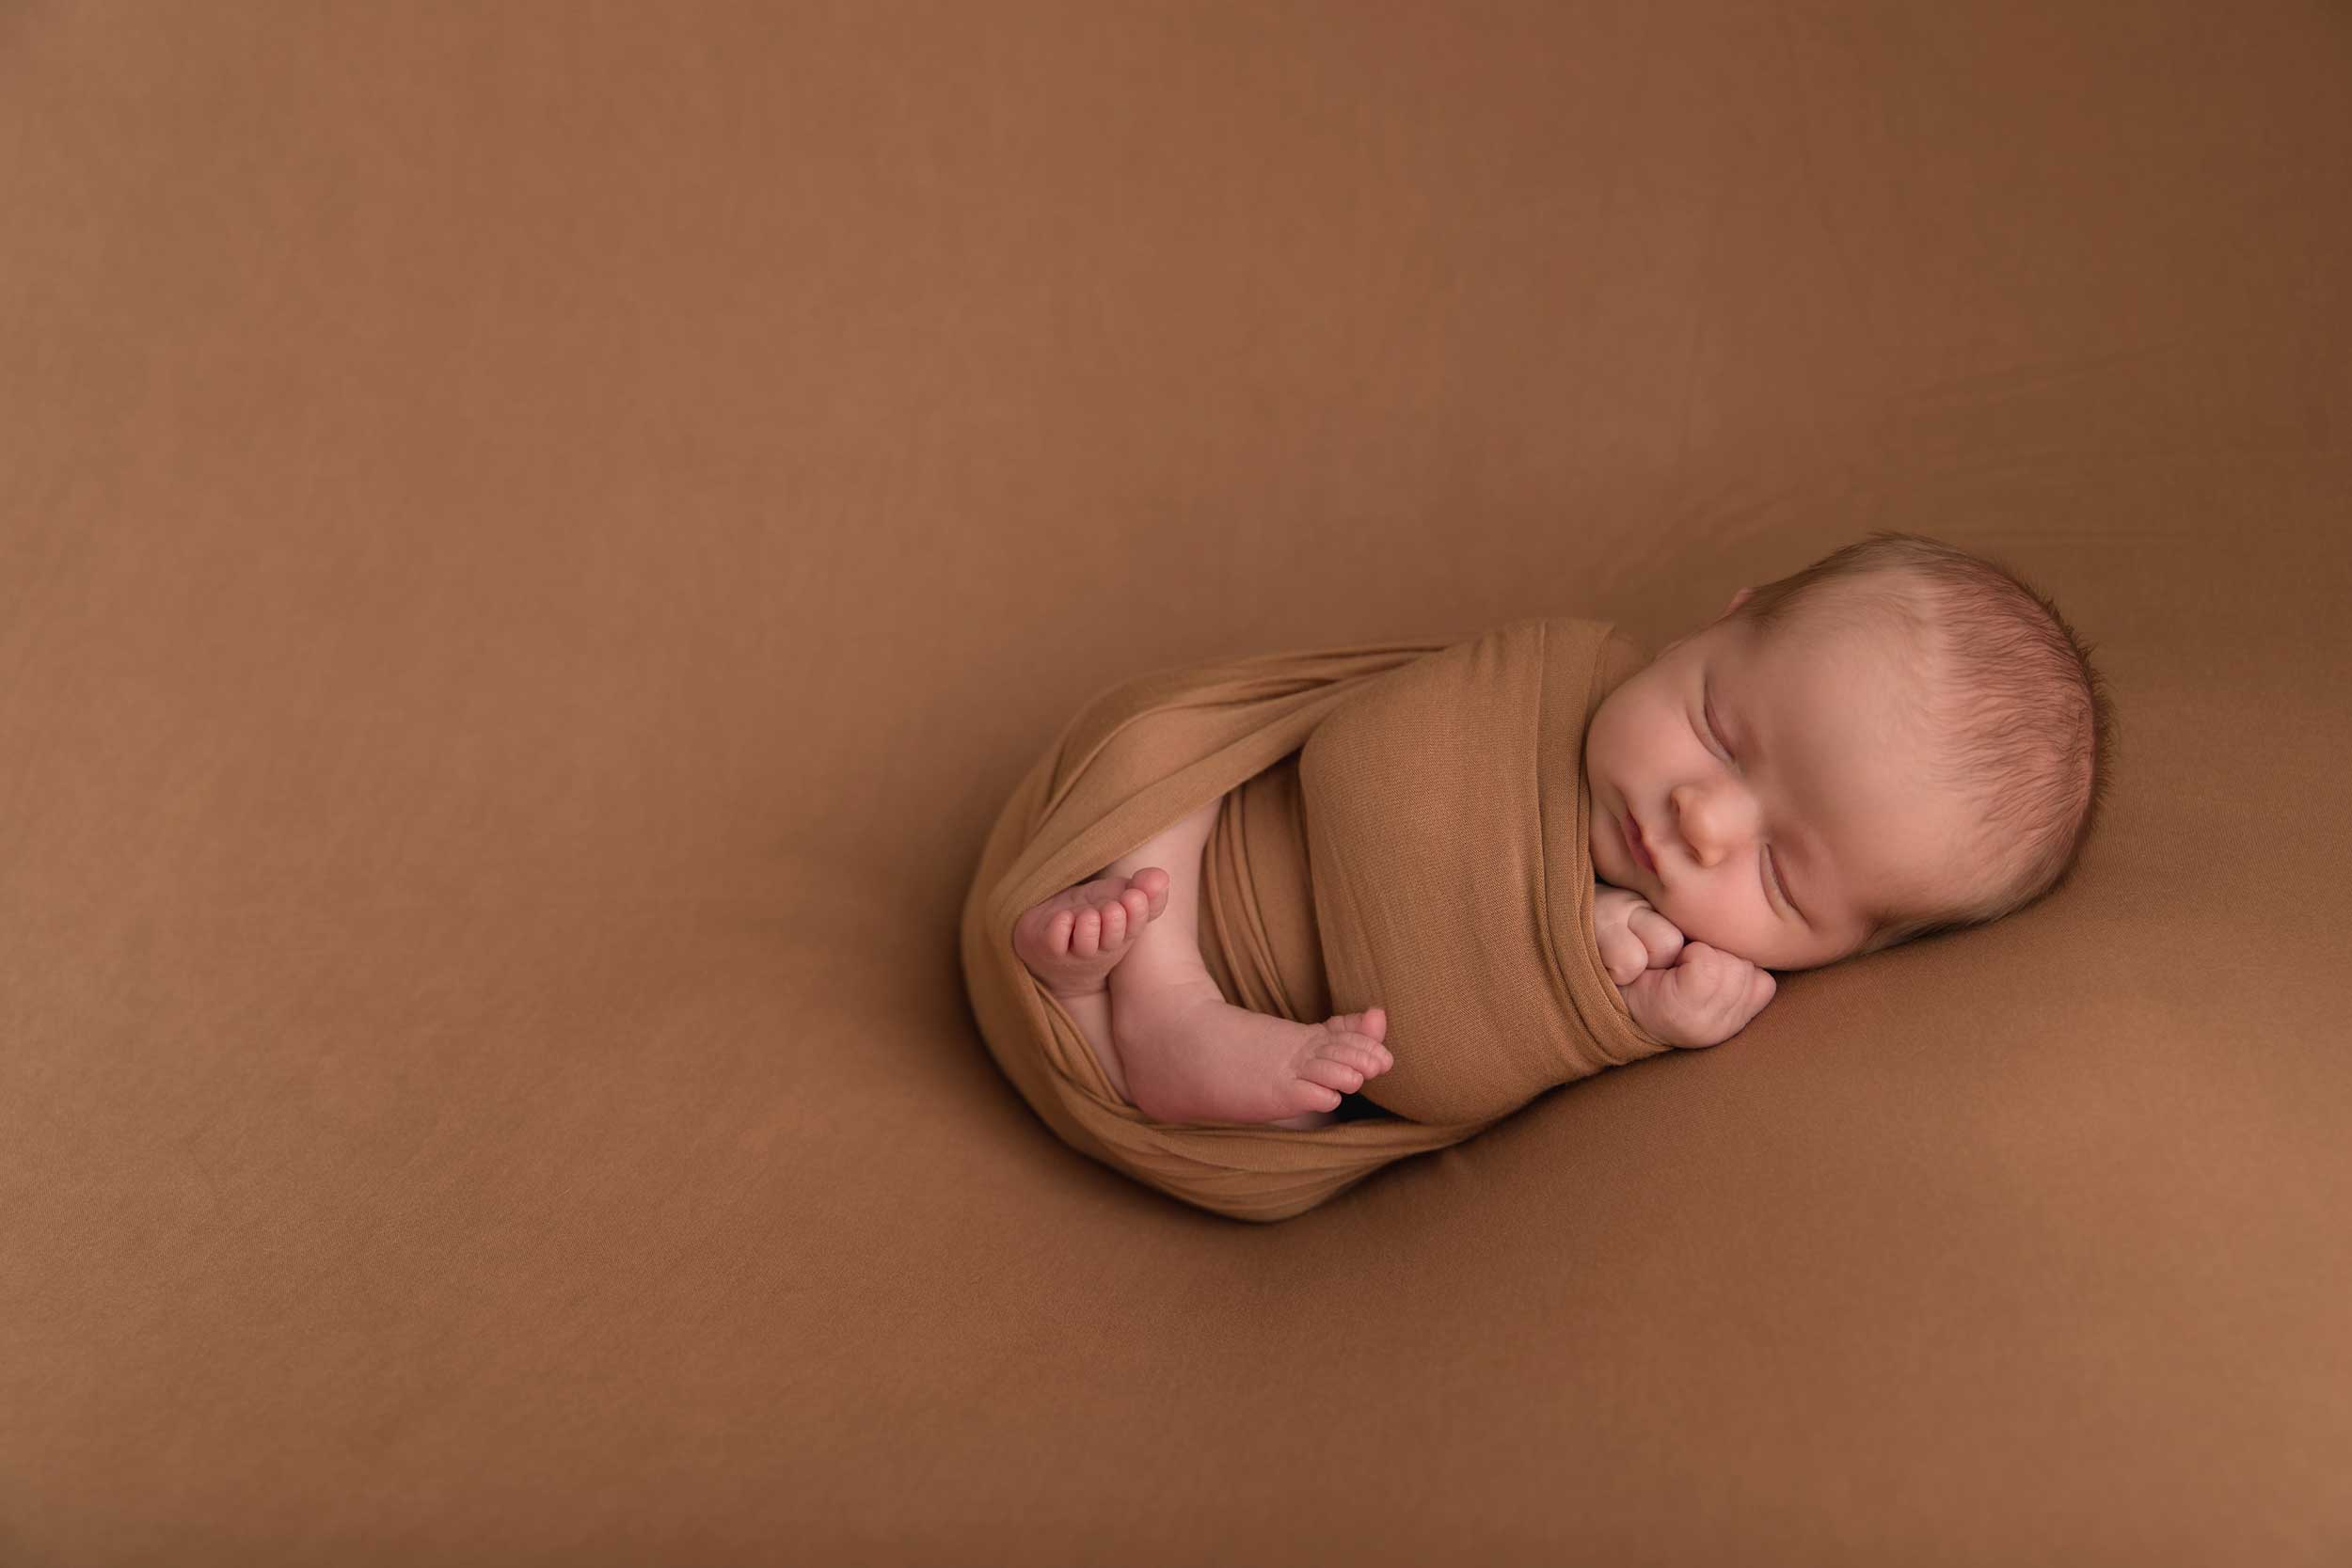 newborn photography of a small infant during mini session